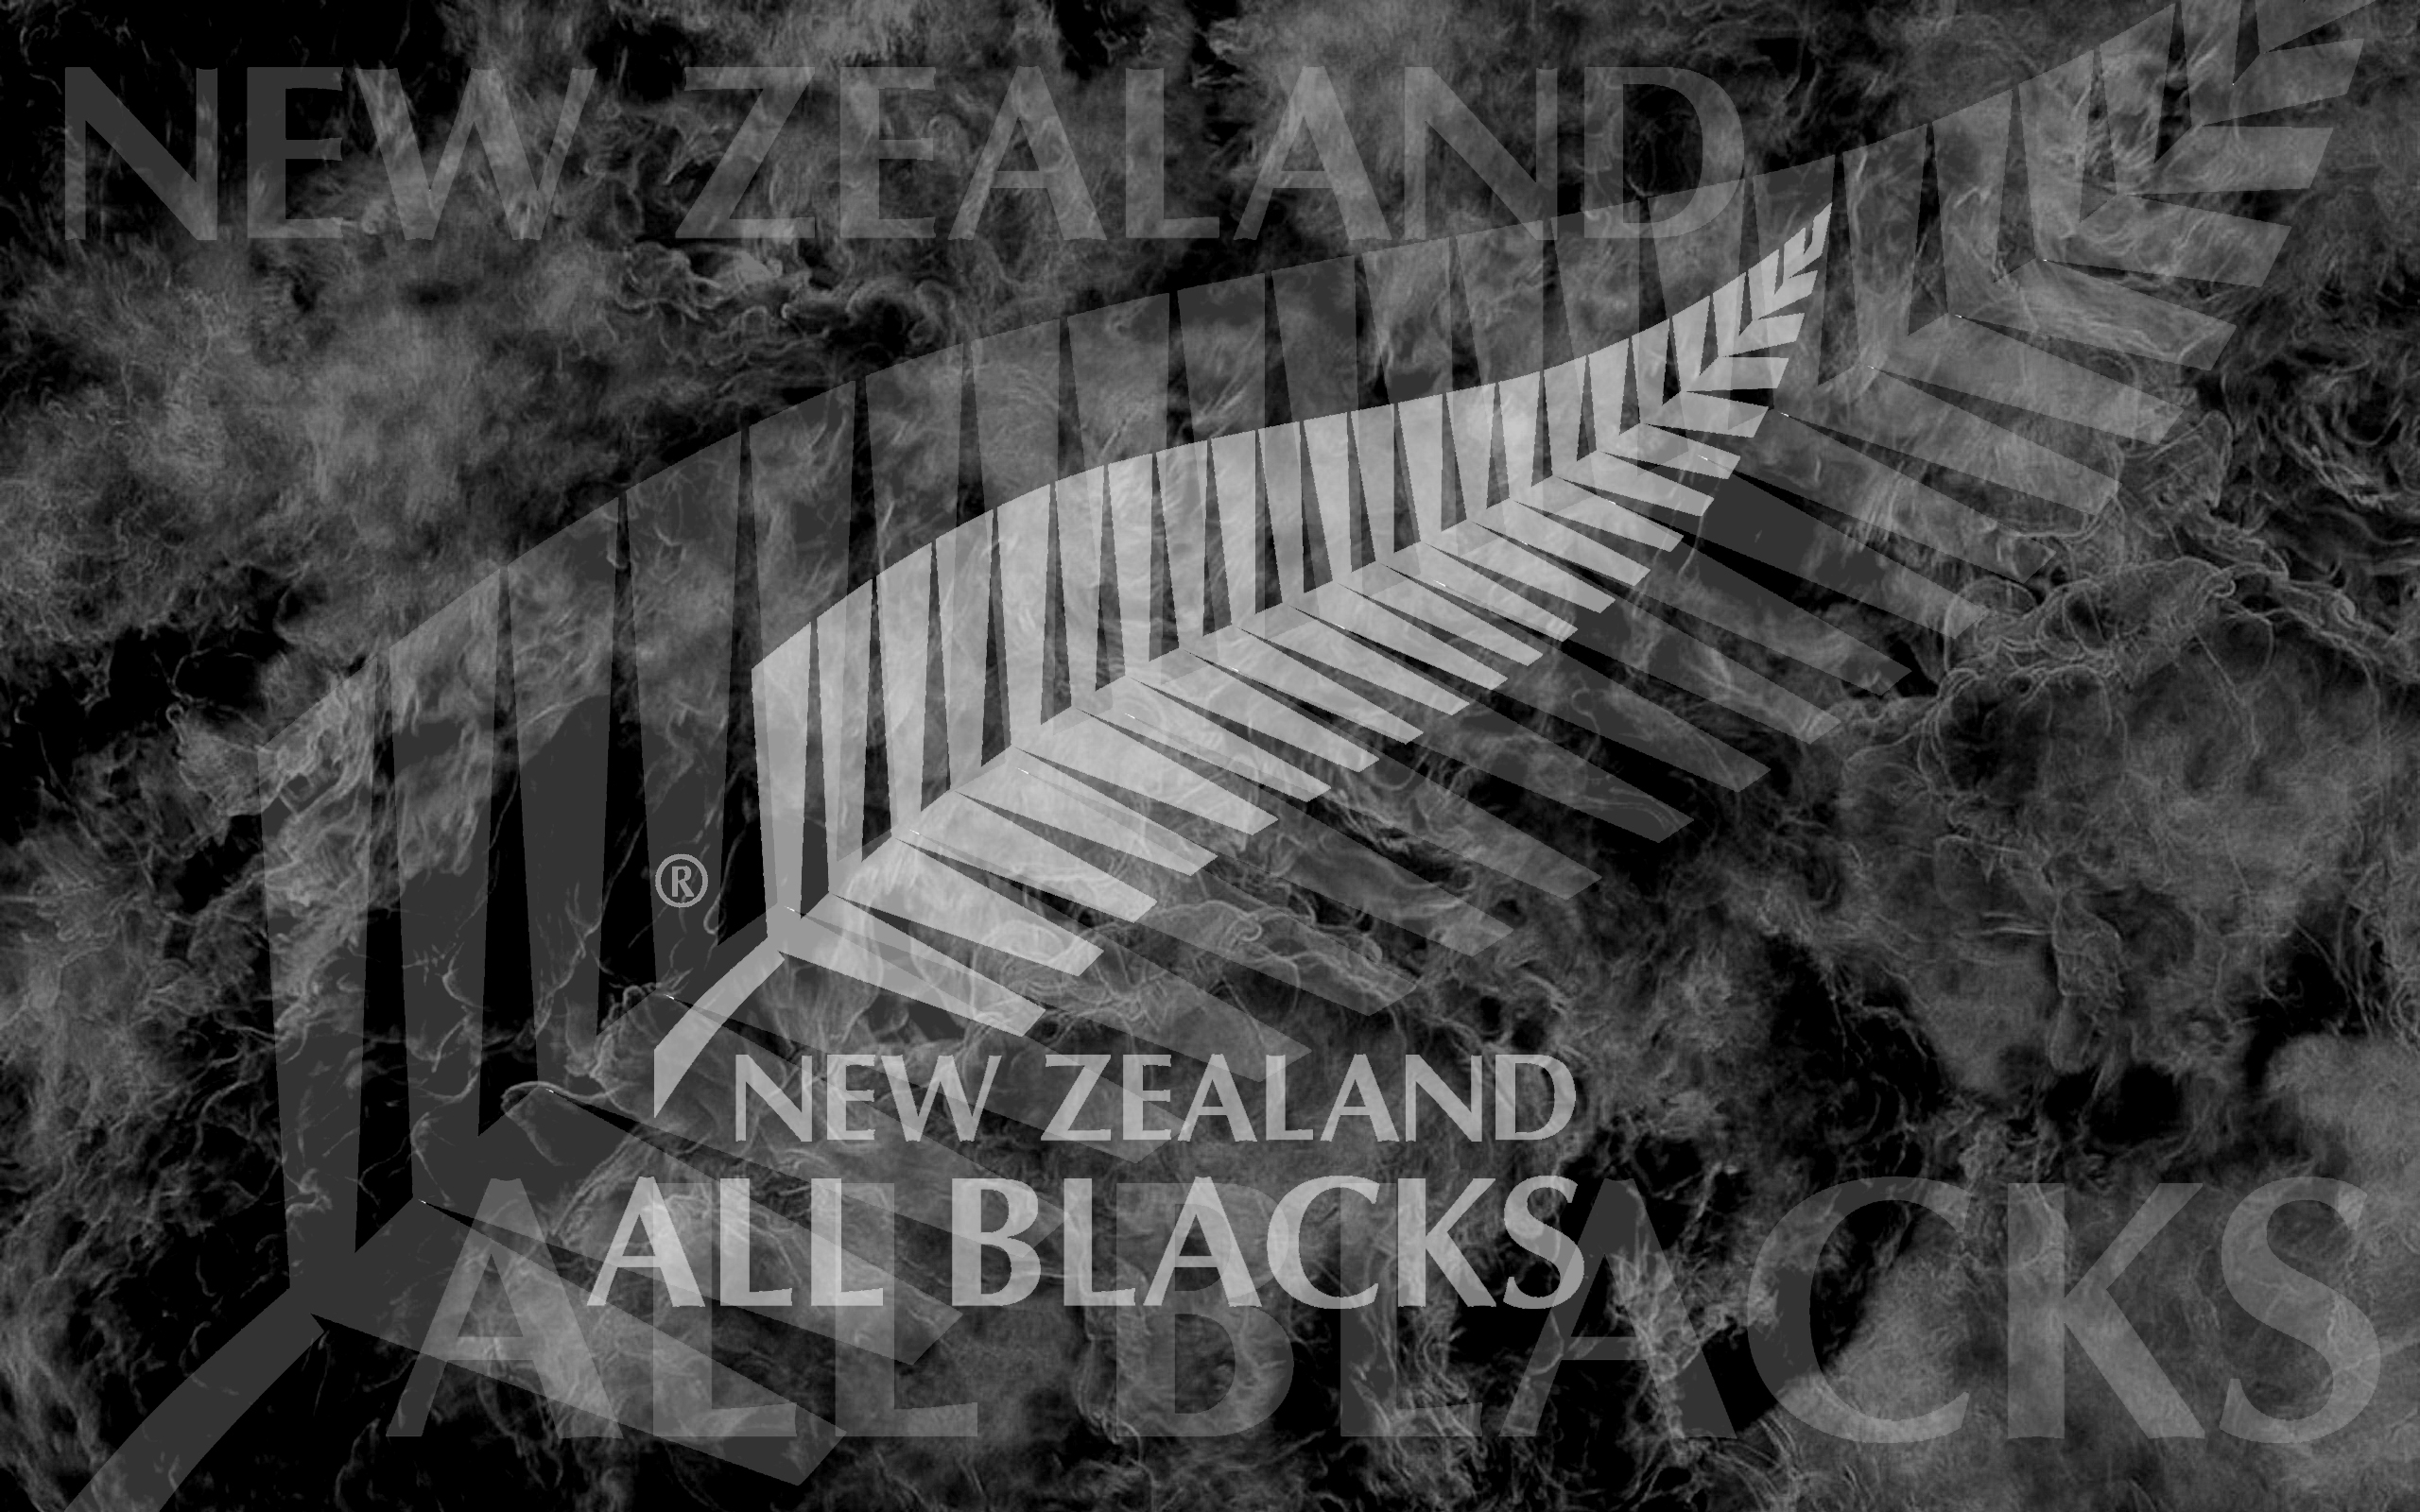 Awesome 3d Art Wallpaper Free New Zealand All Black Rugby Hd Backgrounds